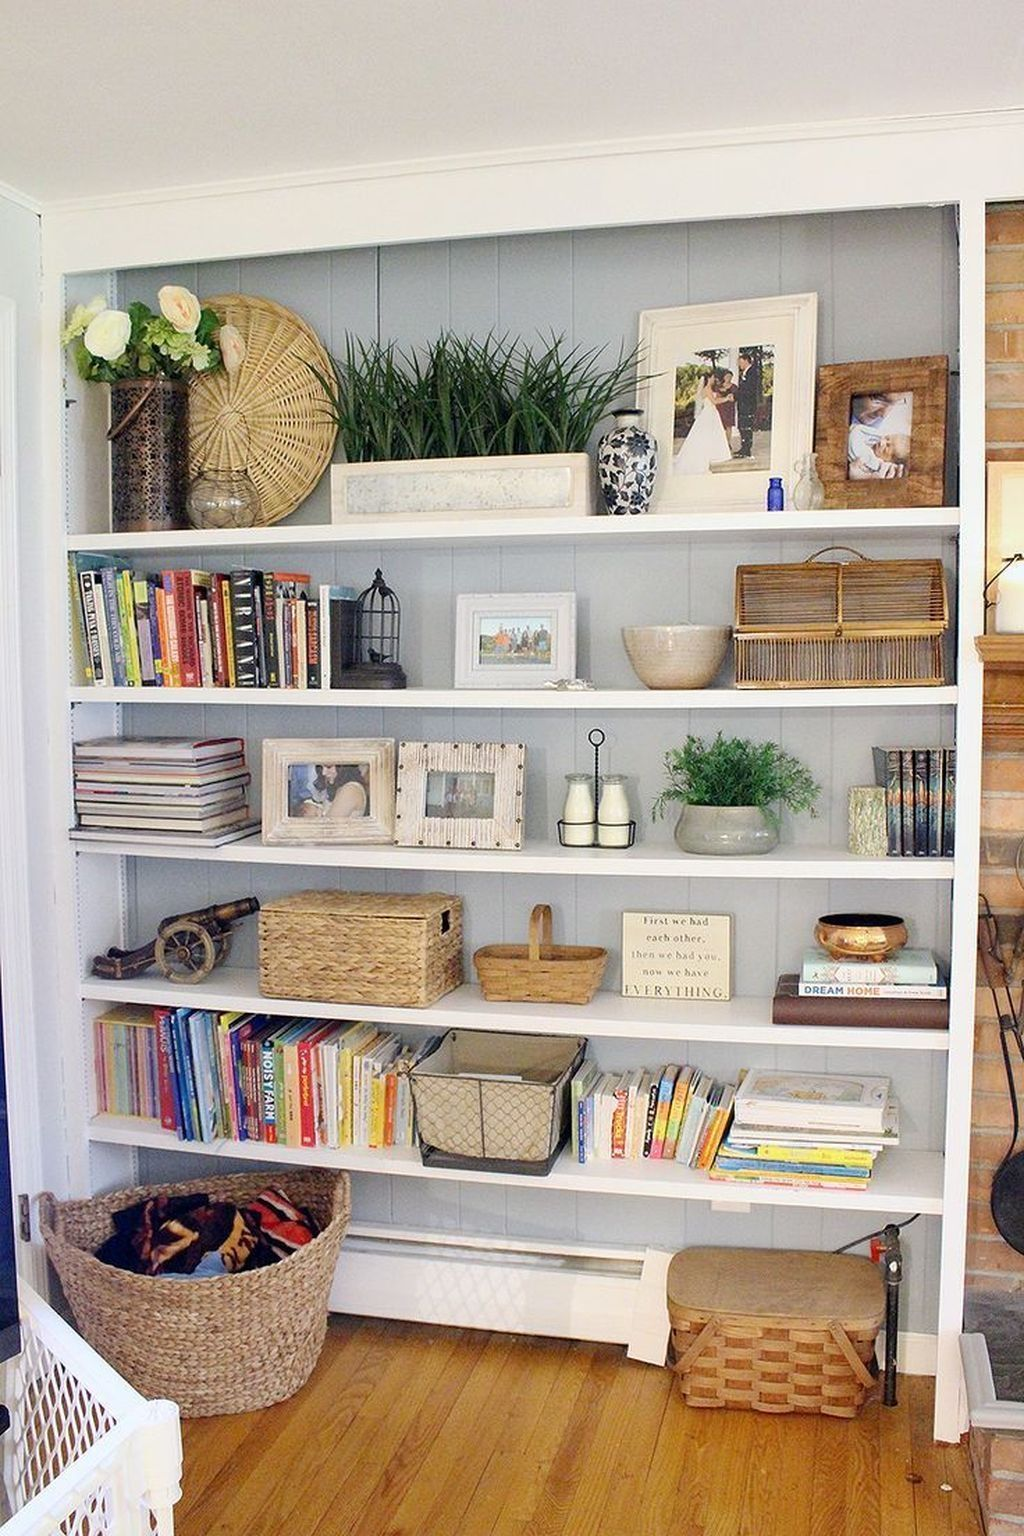 49 Lovely Farmhouse Bookshelf Decoration Ideas In 2020 Shelf Decor Living Room Cozy Living Room Design Bookcase Decor